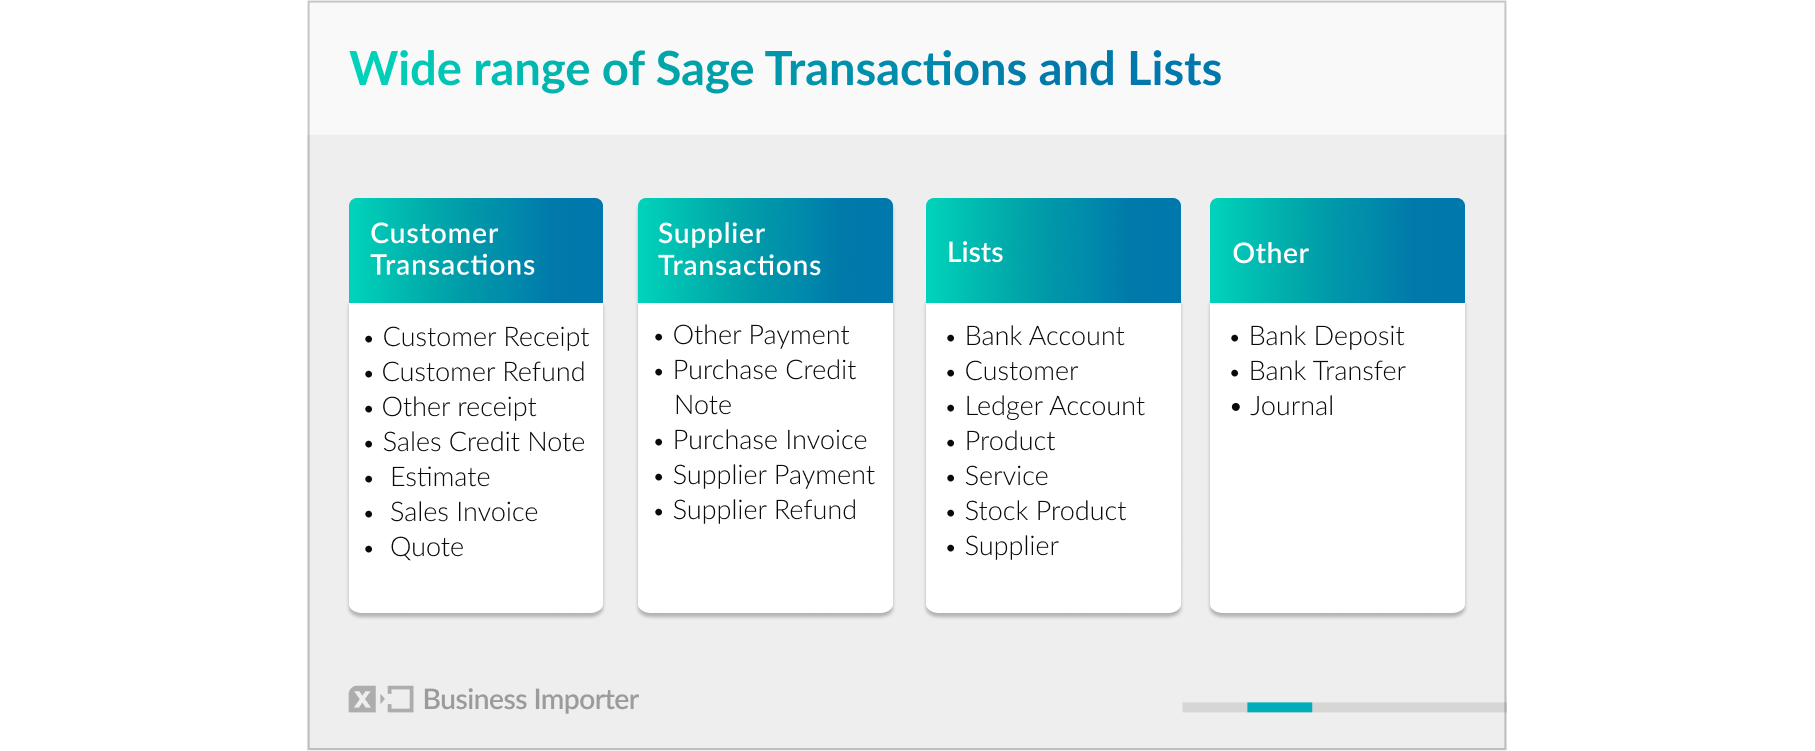 Transactions and Lists you can import Into Sage